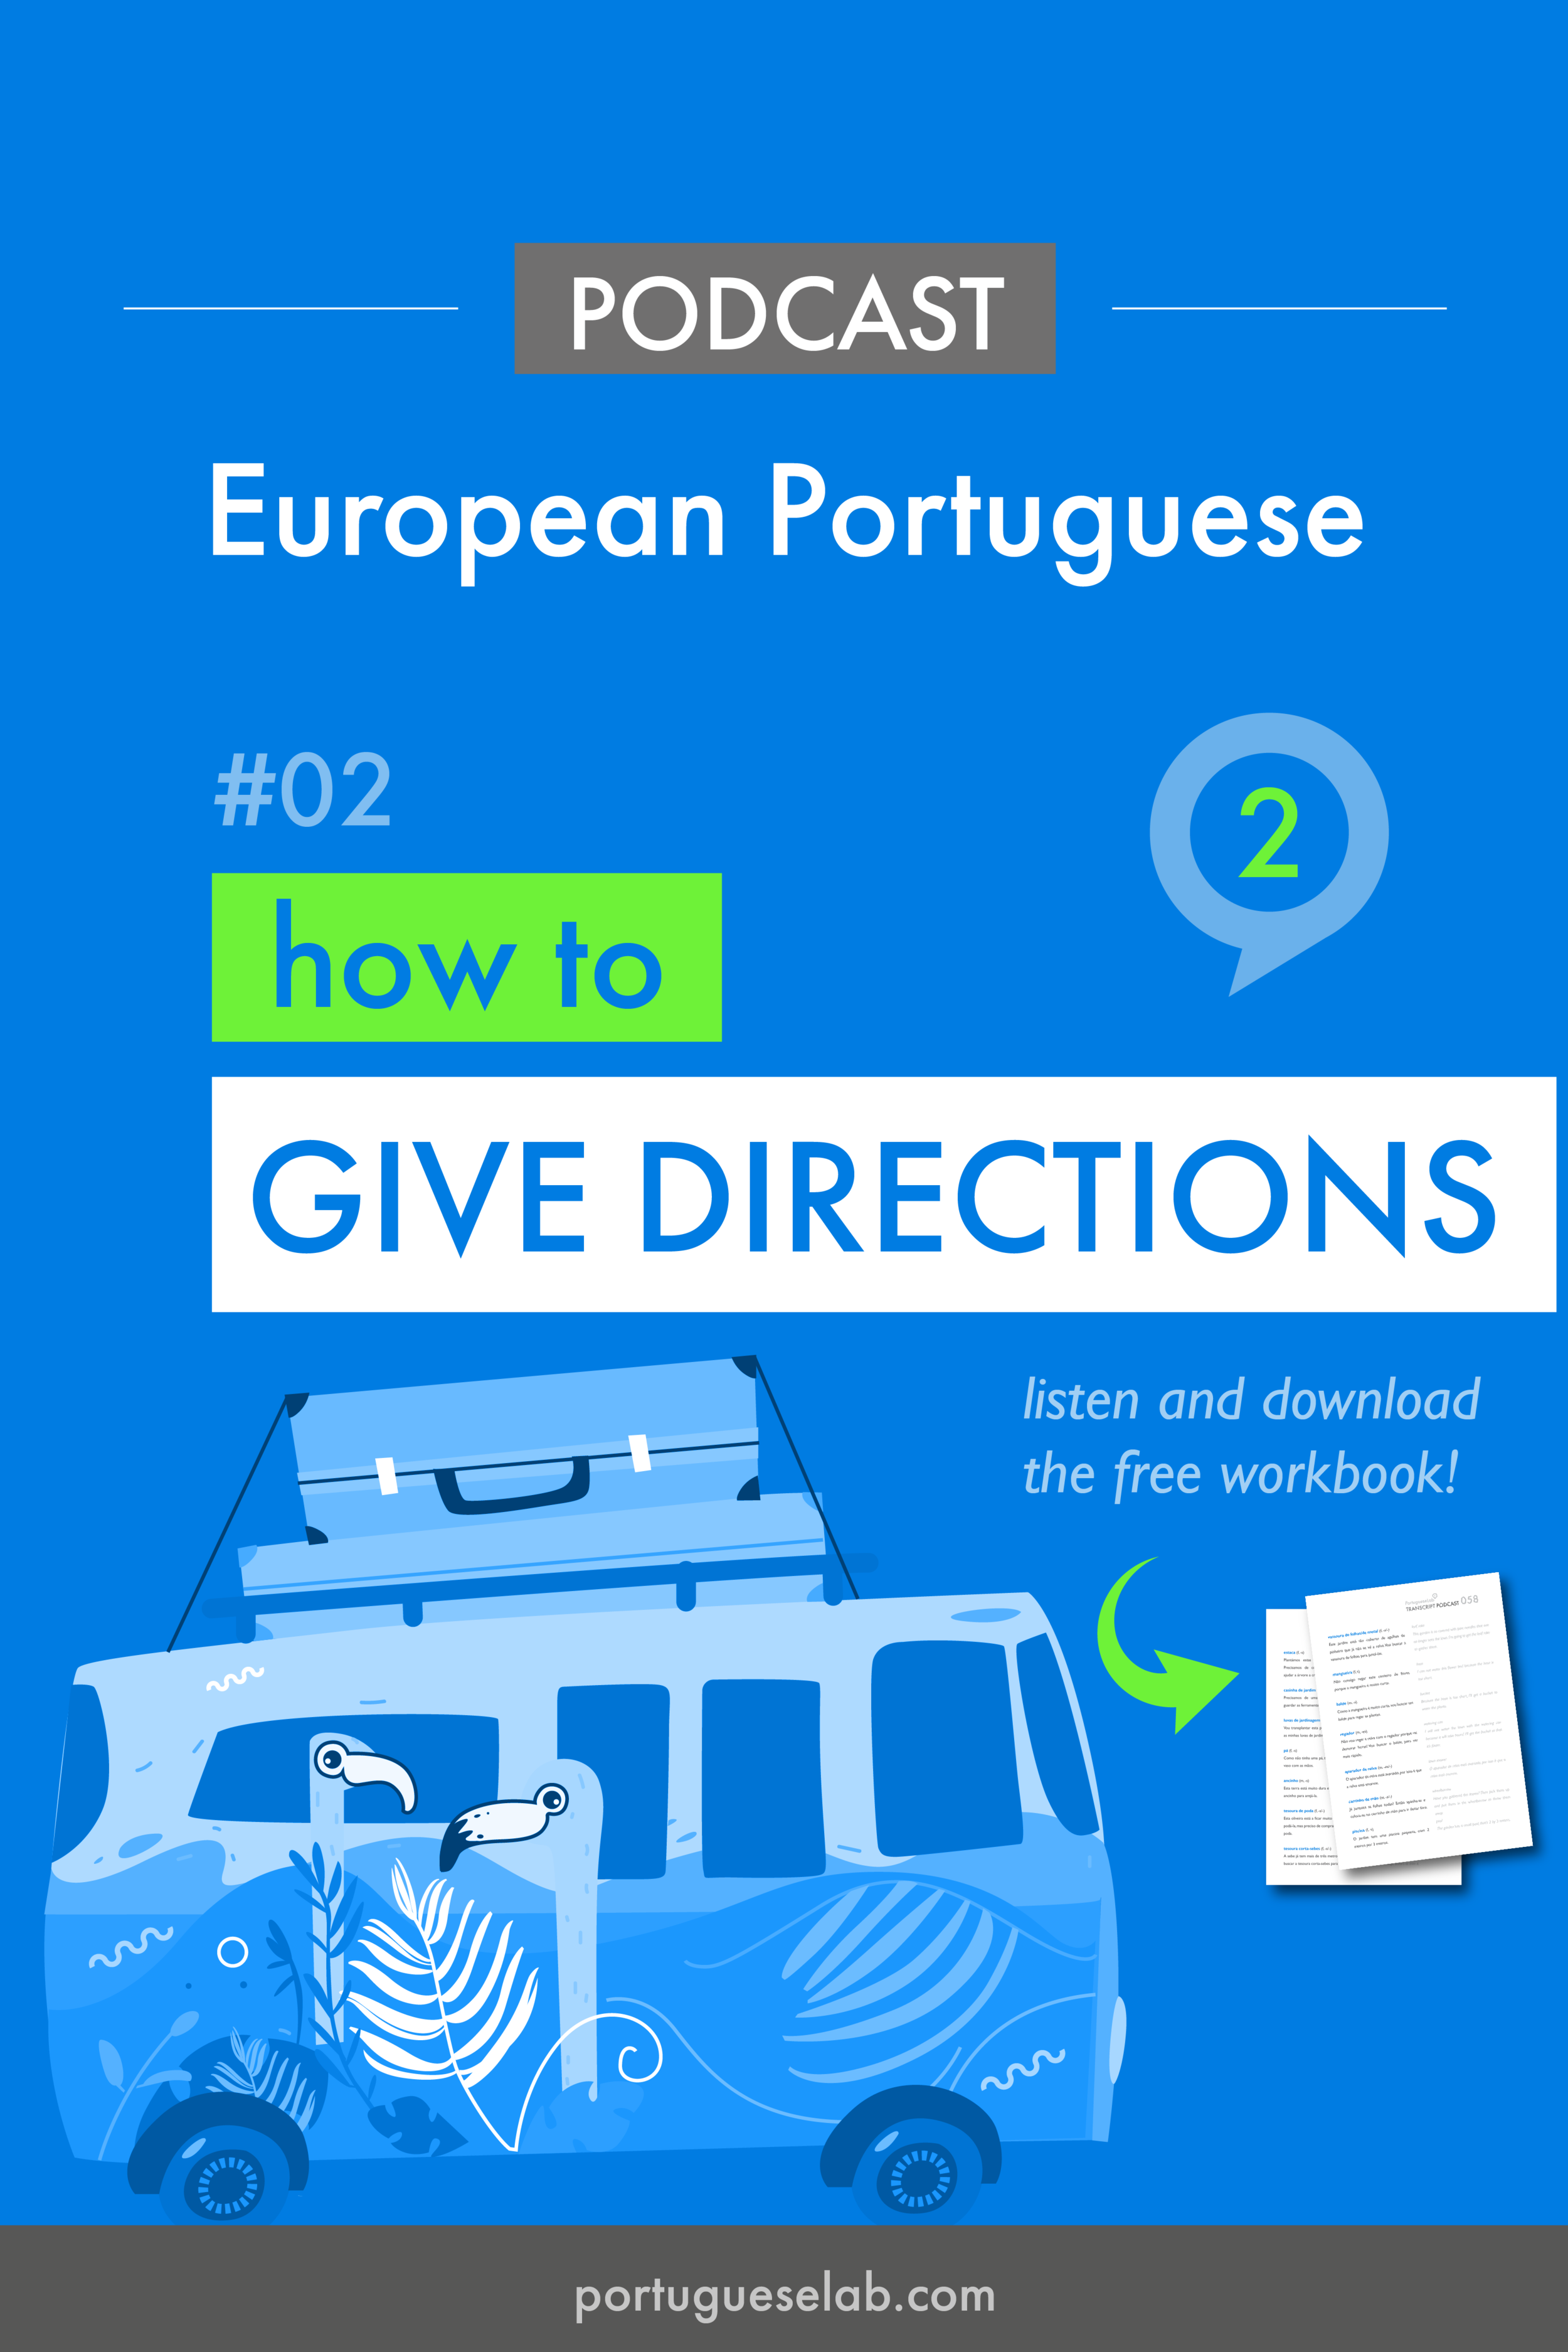 Portuguese Lab Podcast - European Portuguese - 02 - How to give directions.png